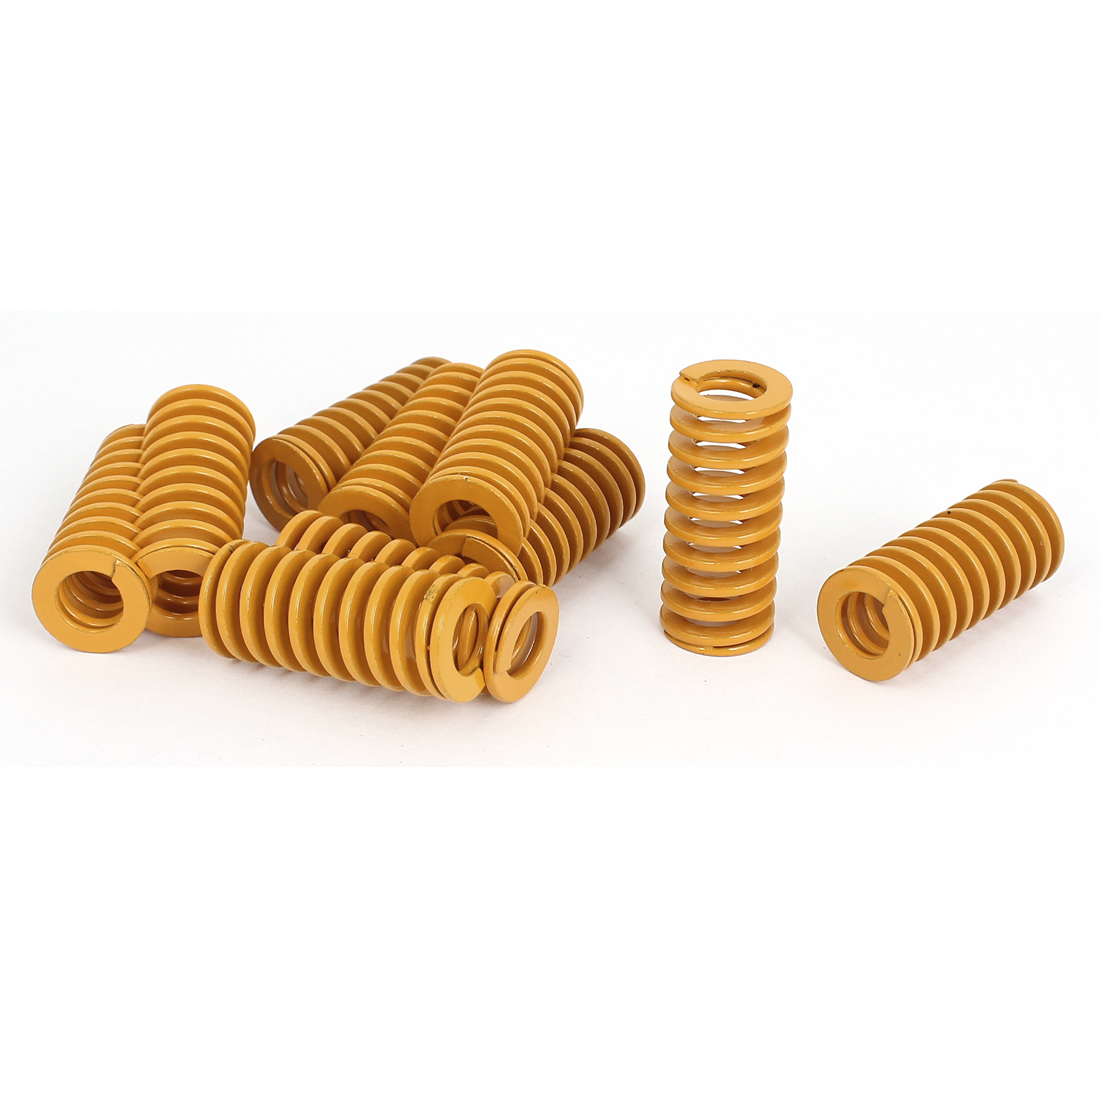 18mm OD 40mm Long Light Load Stamping Compression Mold Die Spring Yellow 10pcs